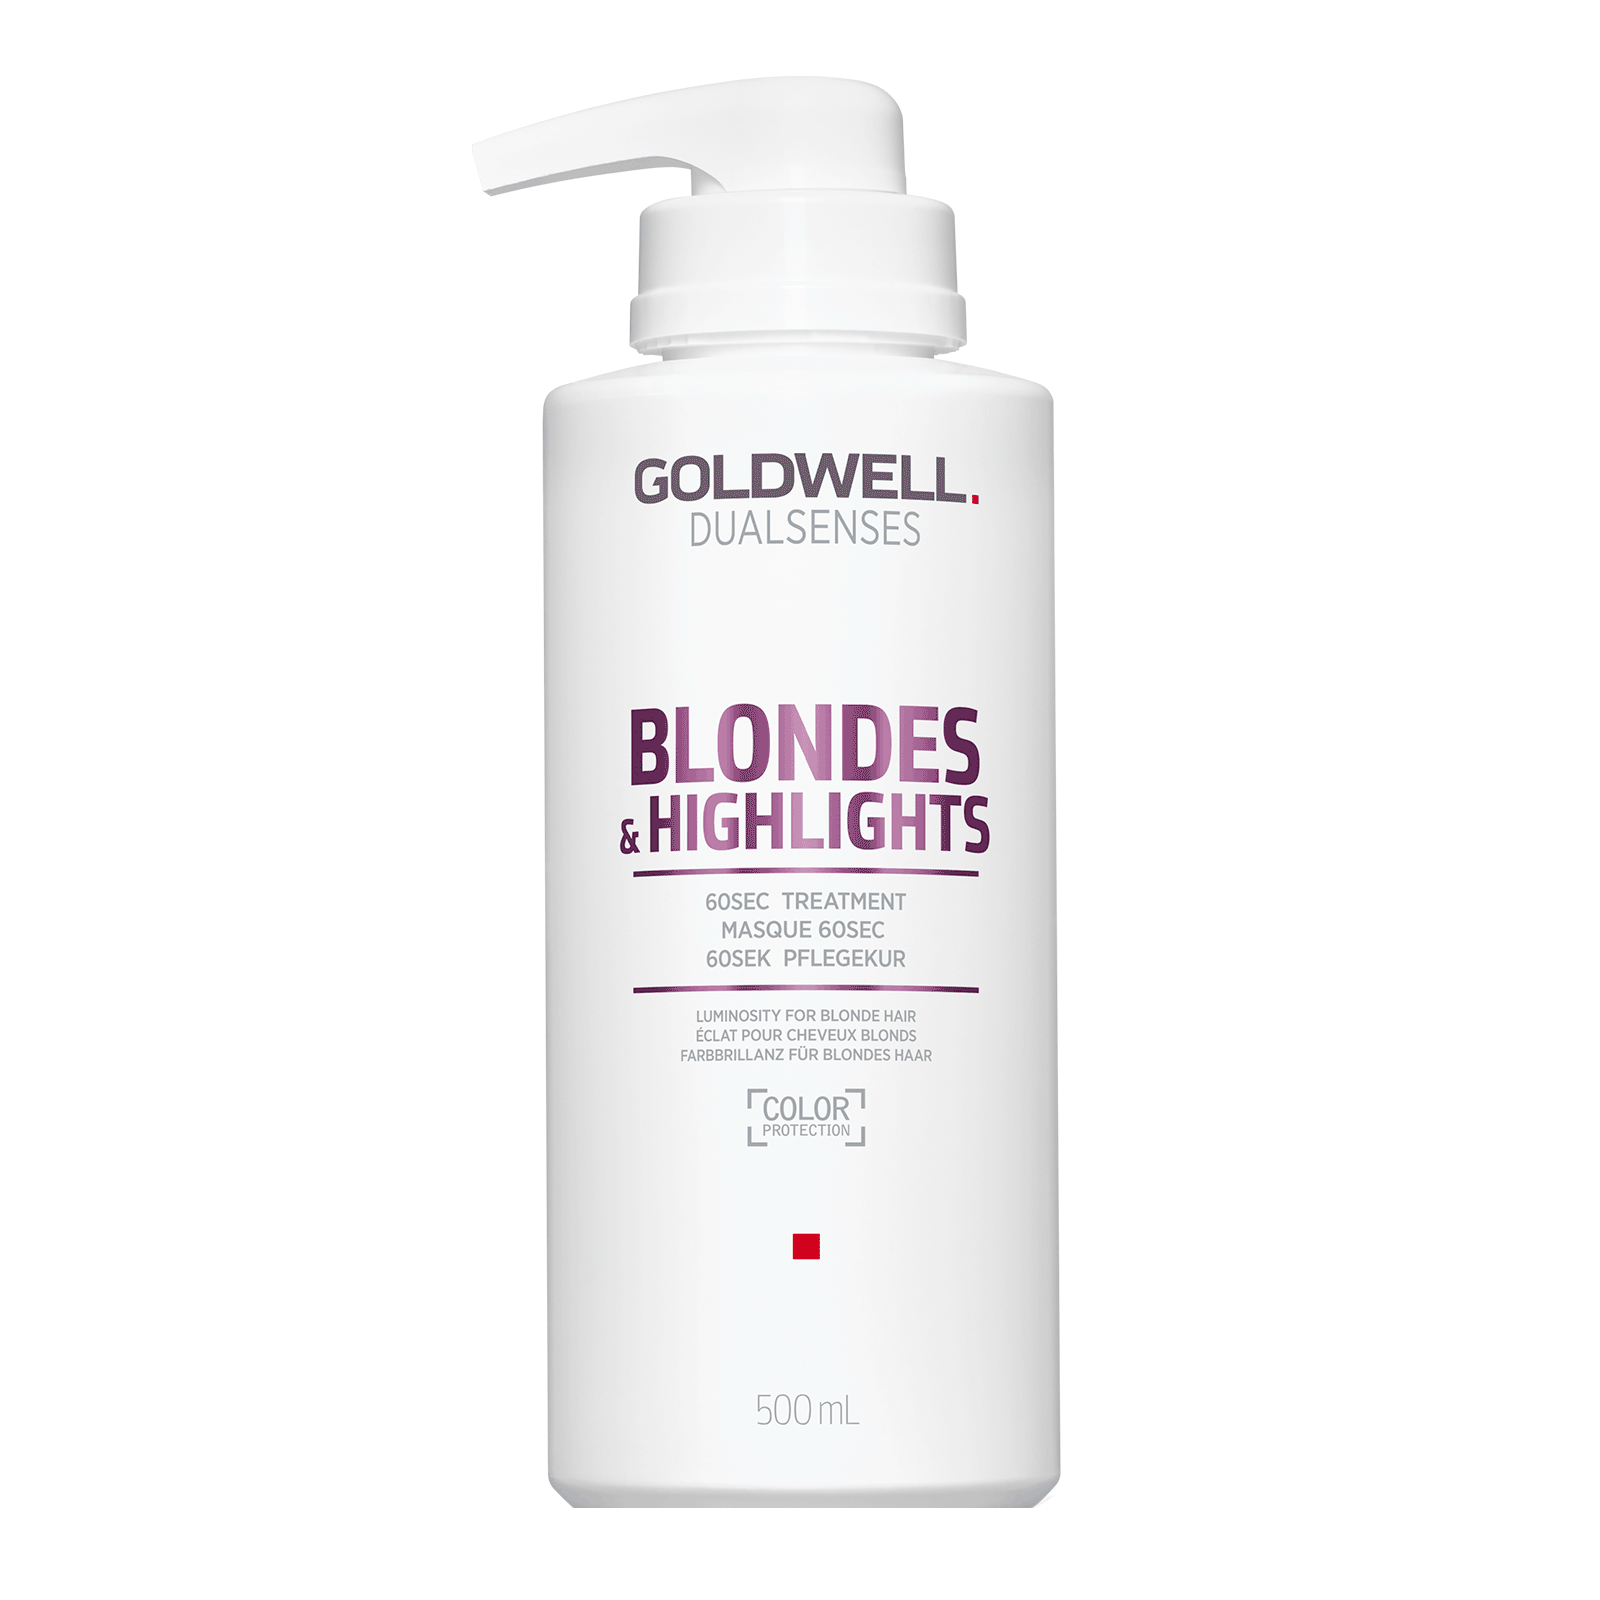 Dualsenses - Blonde & Highlights 60 Second Treatment